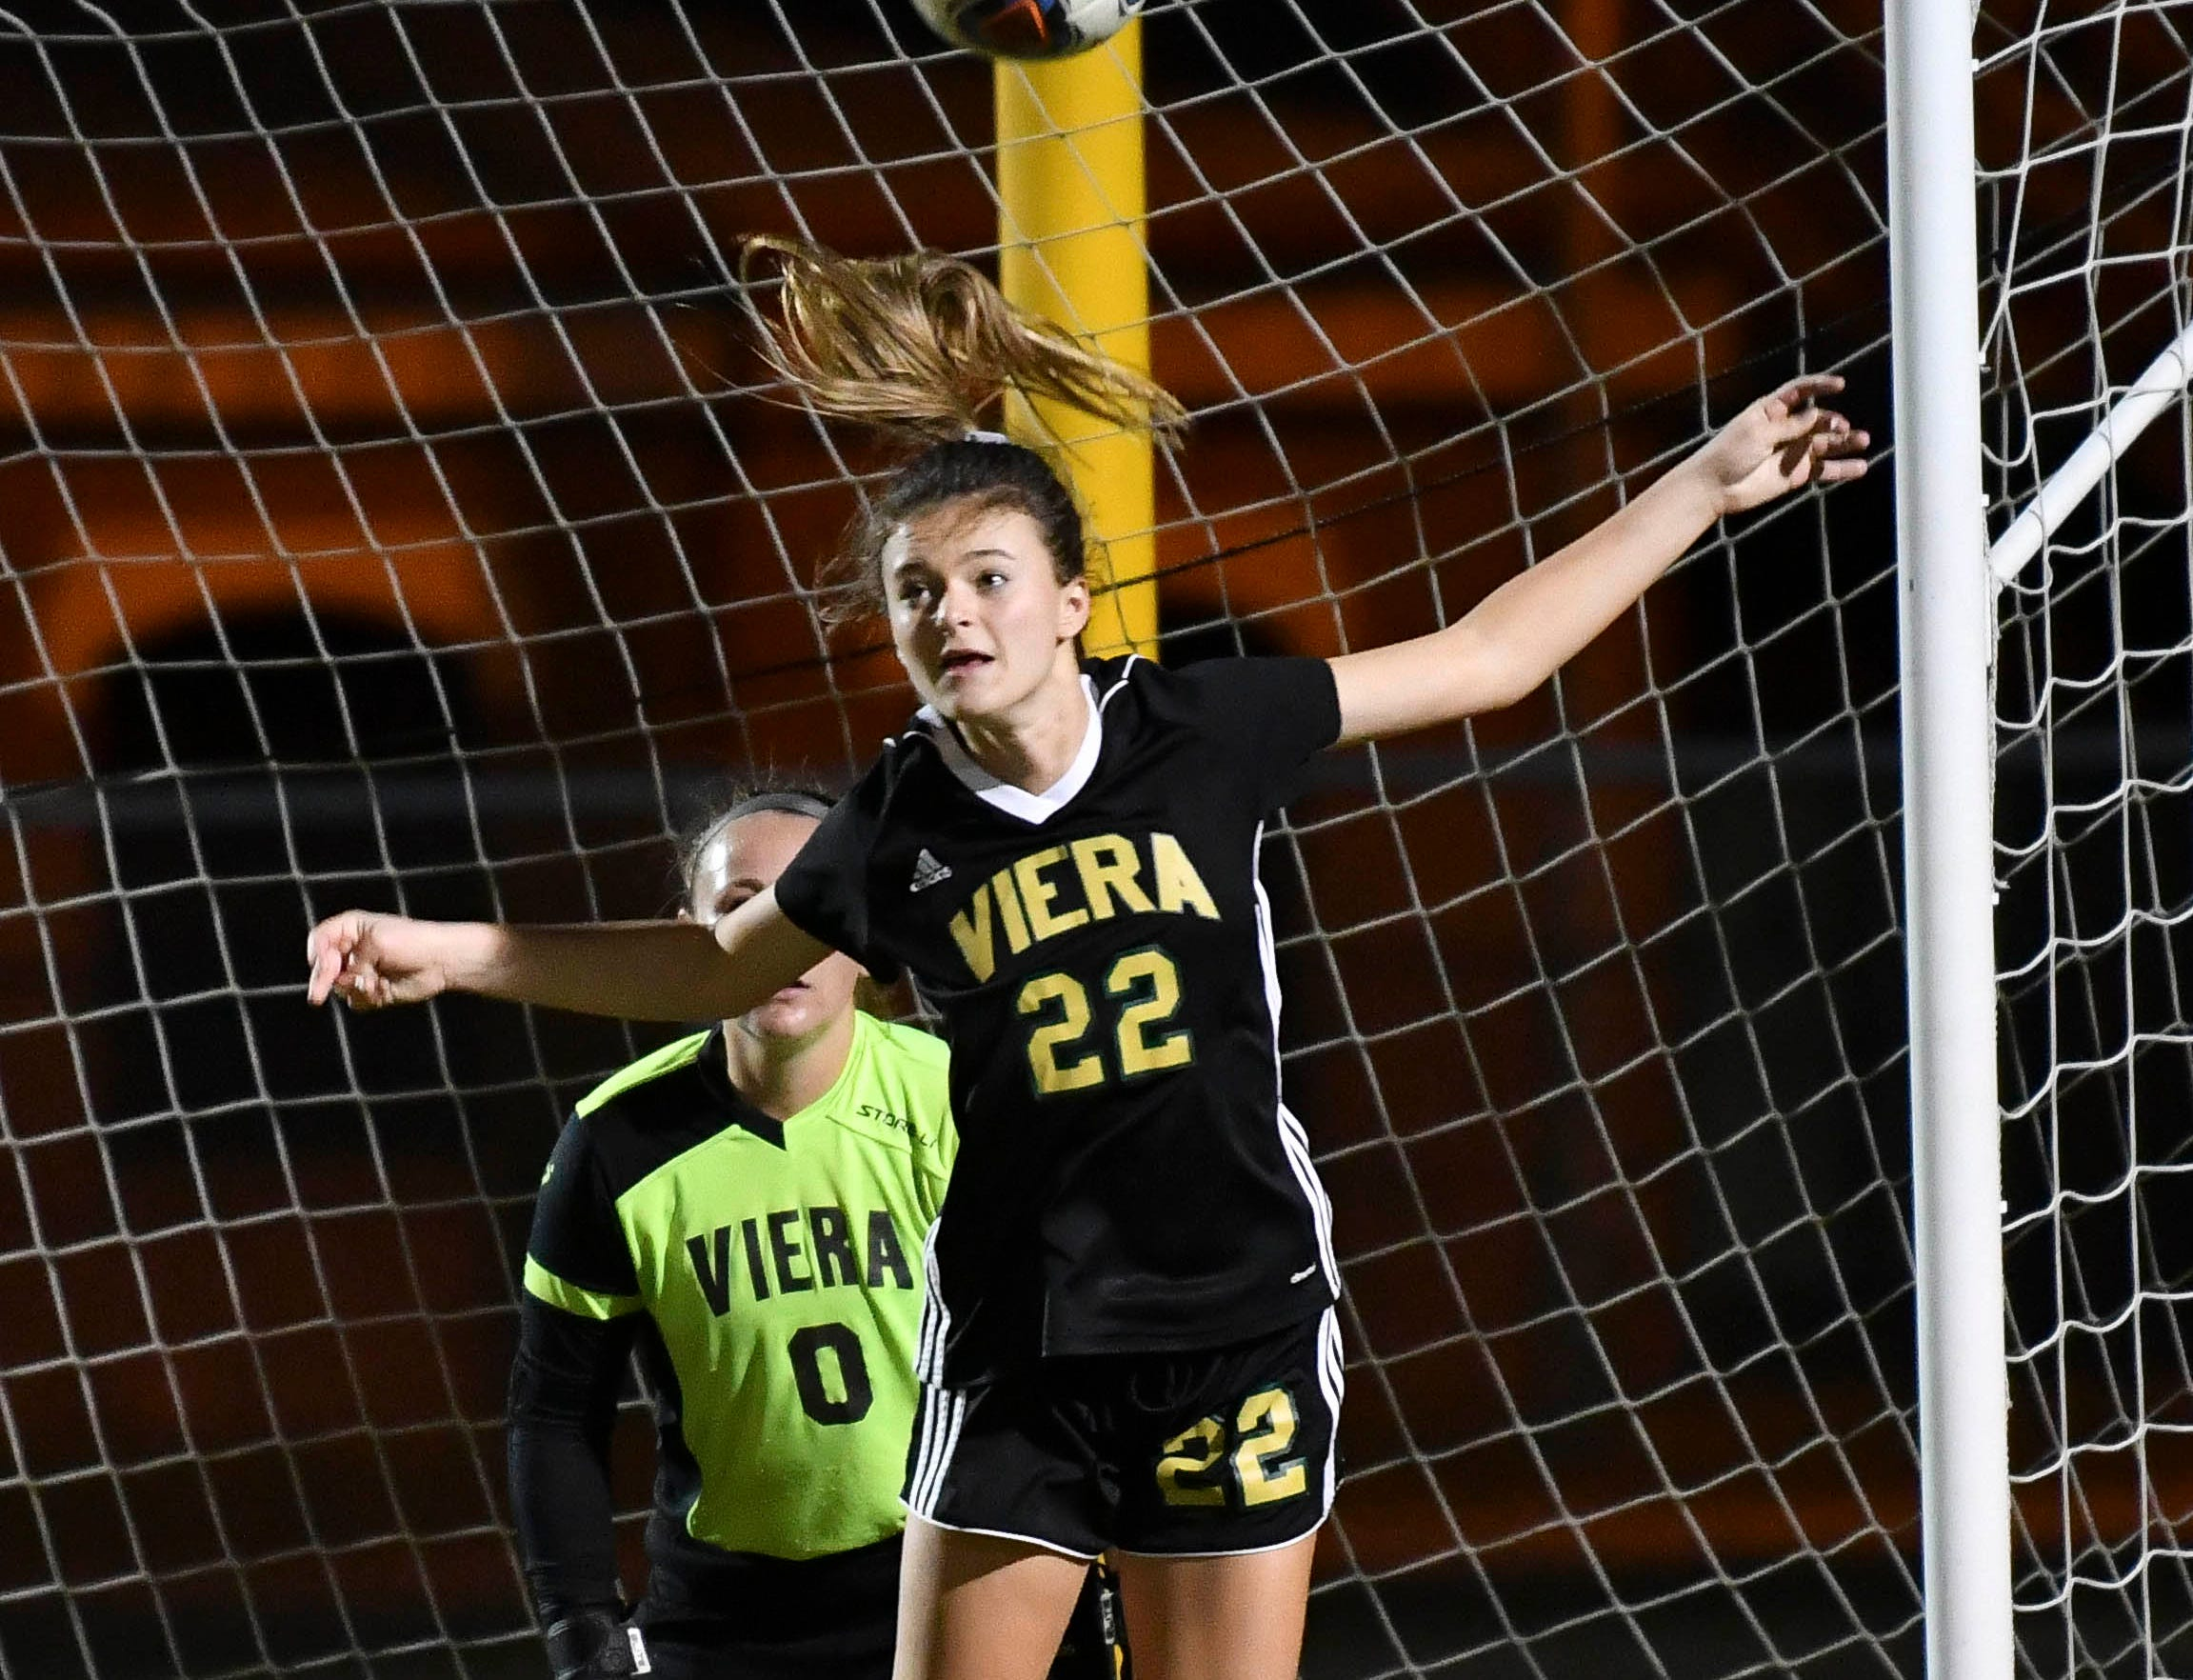 Lauren Mieczkowski of Viera heads the ball away from the Hawks goal during Tuesday's Regional Quarterfinal game at Viera High School